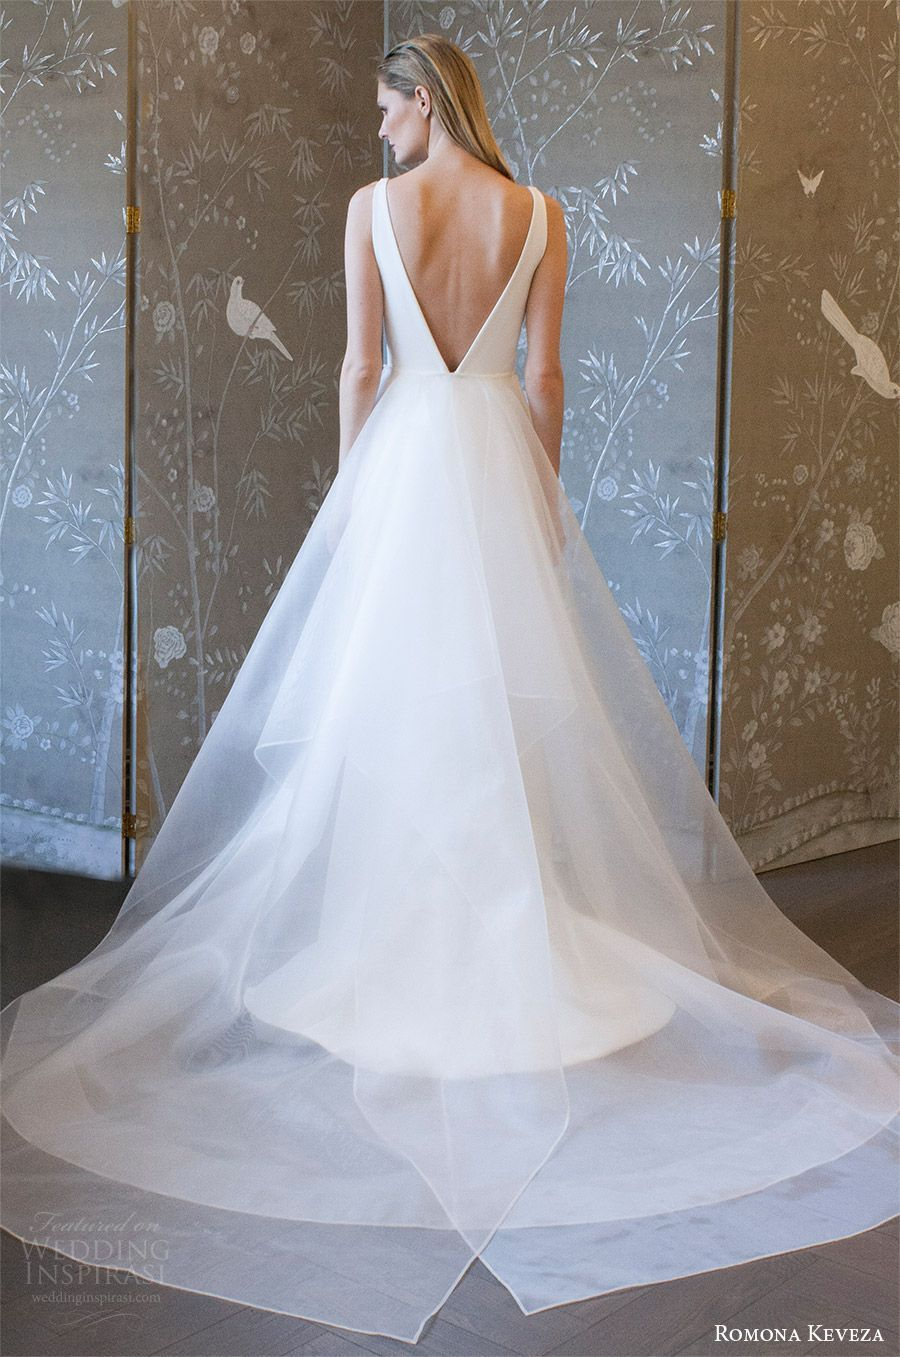 Romona keveza collection spring wedding dresses in dress